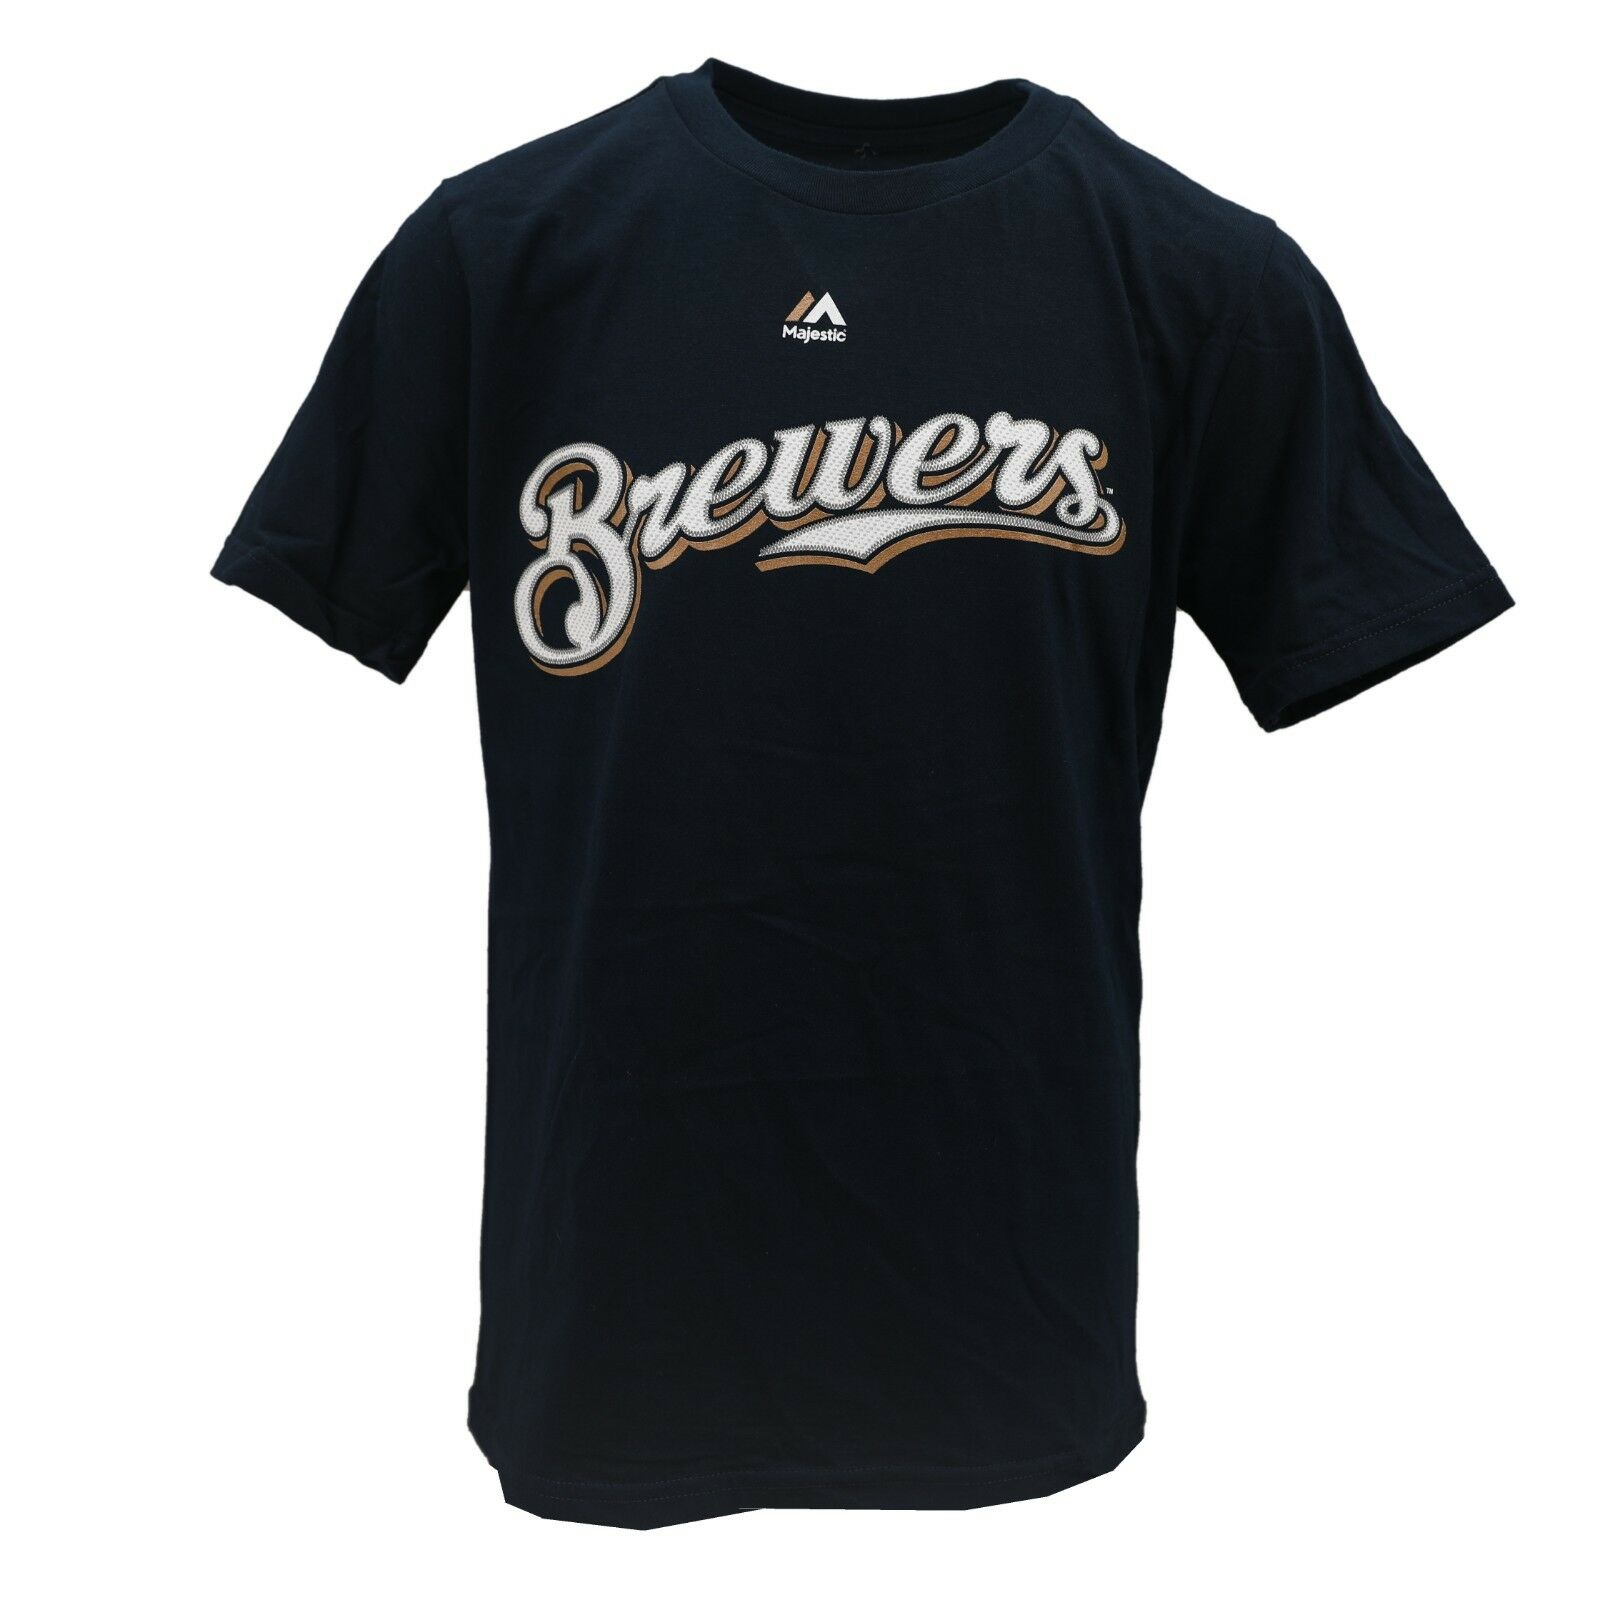 release date 523d1 9256f Details about Milwaukee Brewers MLB Majestic Kids Youth Size Eric Thames  T-Shirt New with Tags